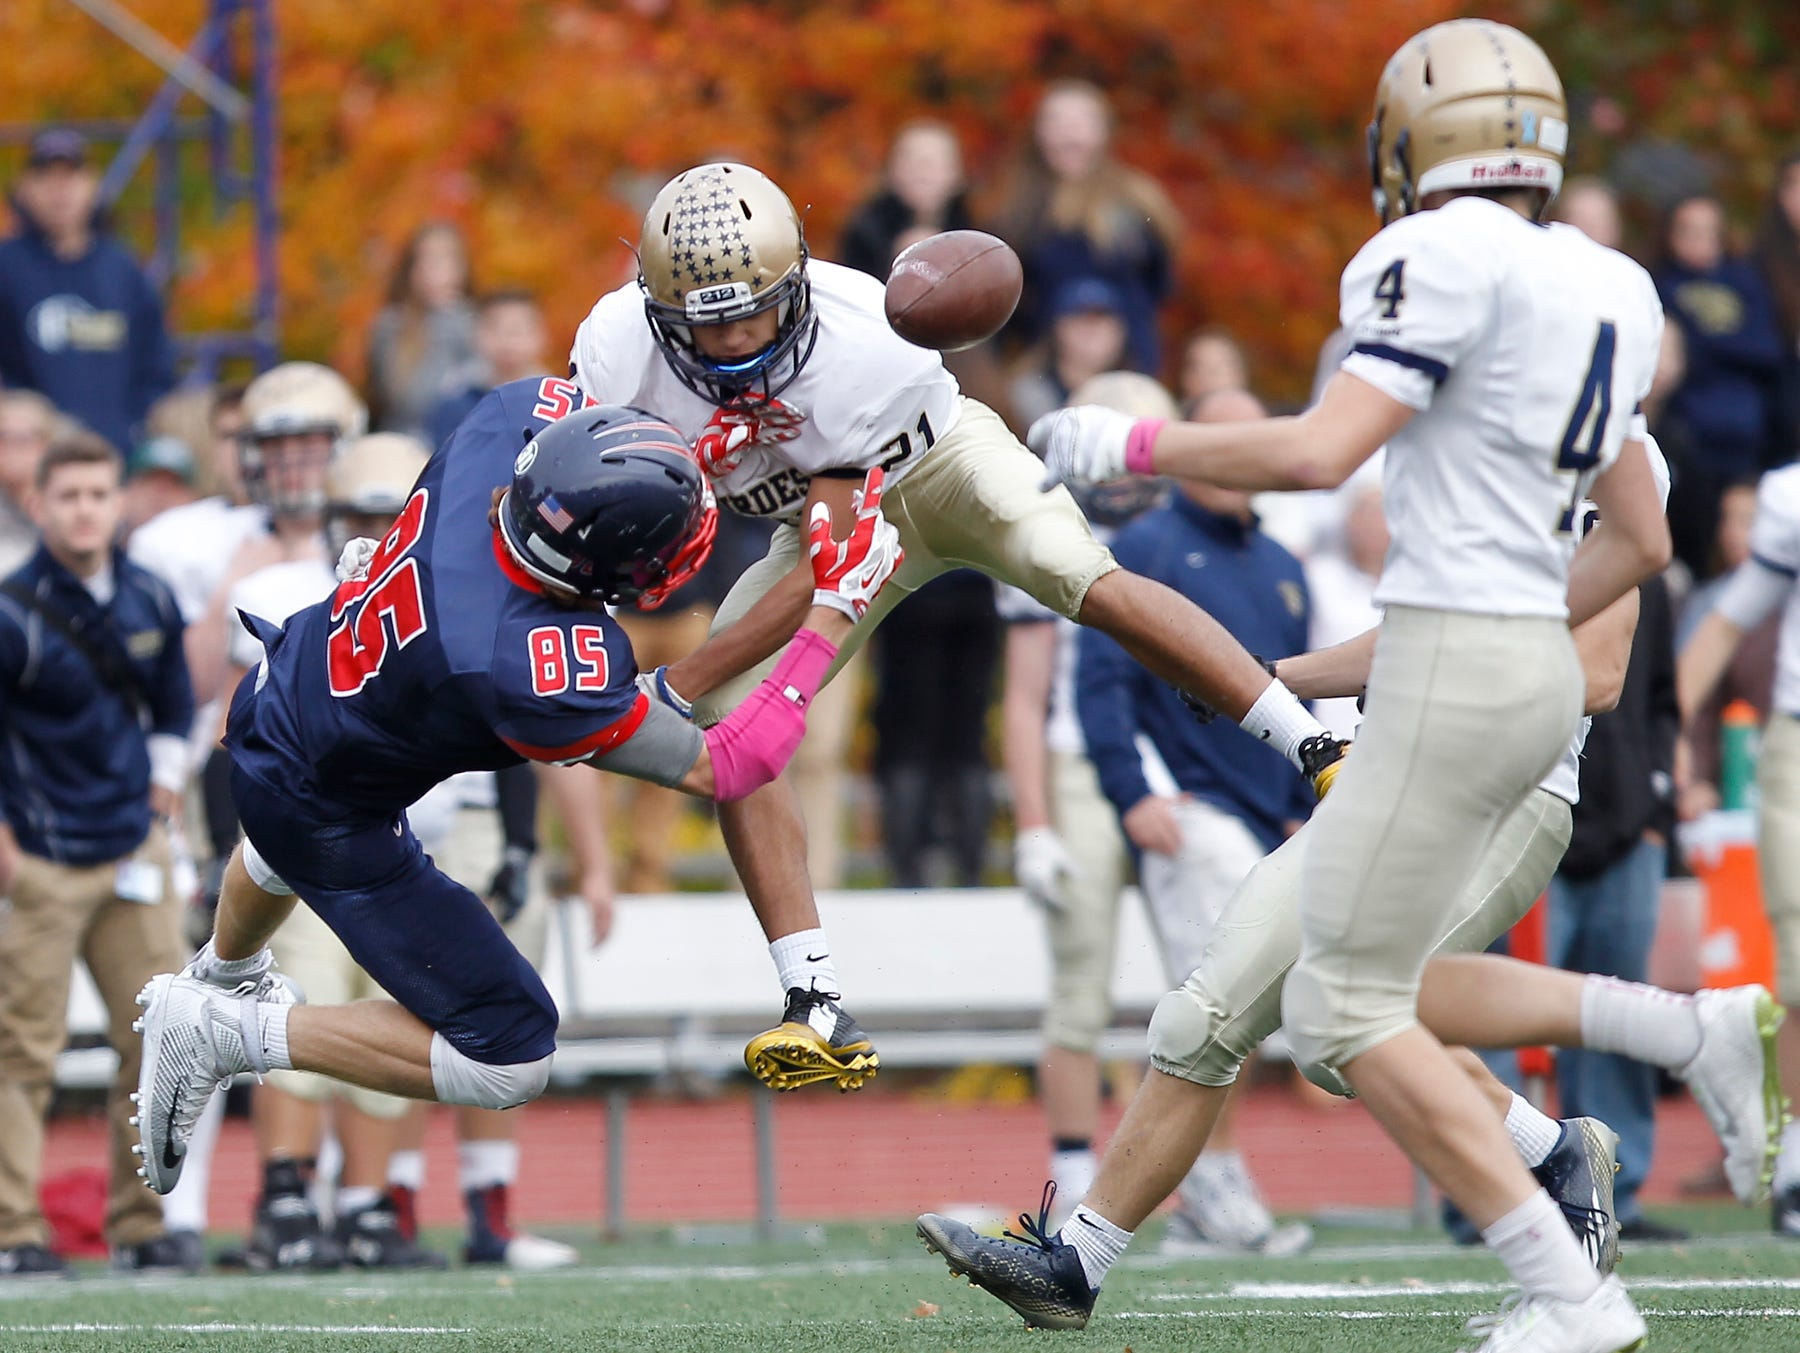 Eastchester's Andrew Schultz (85) looses possession of a pass after a hit by Lourdes' defensive back Nick Santacroce (21) during their 19-27 loss to Our Lady of Lourdes High School in the class A semi-final football game in Eastchester on Saturday, Oct. 31, 2015.